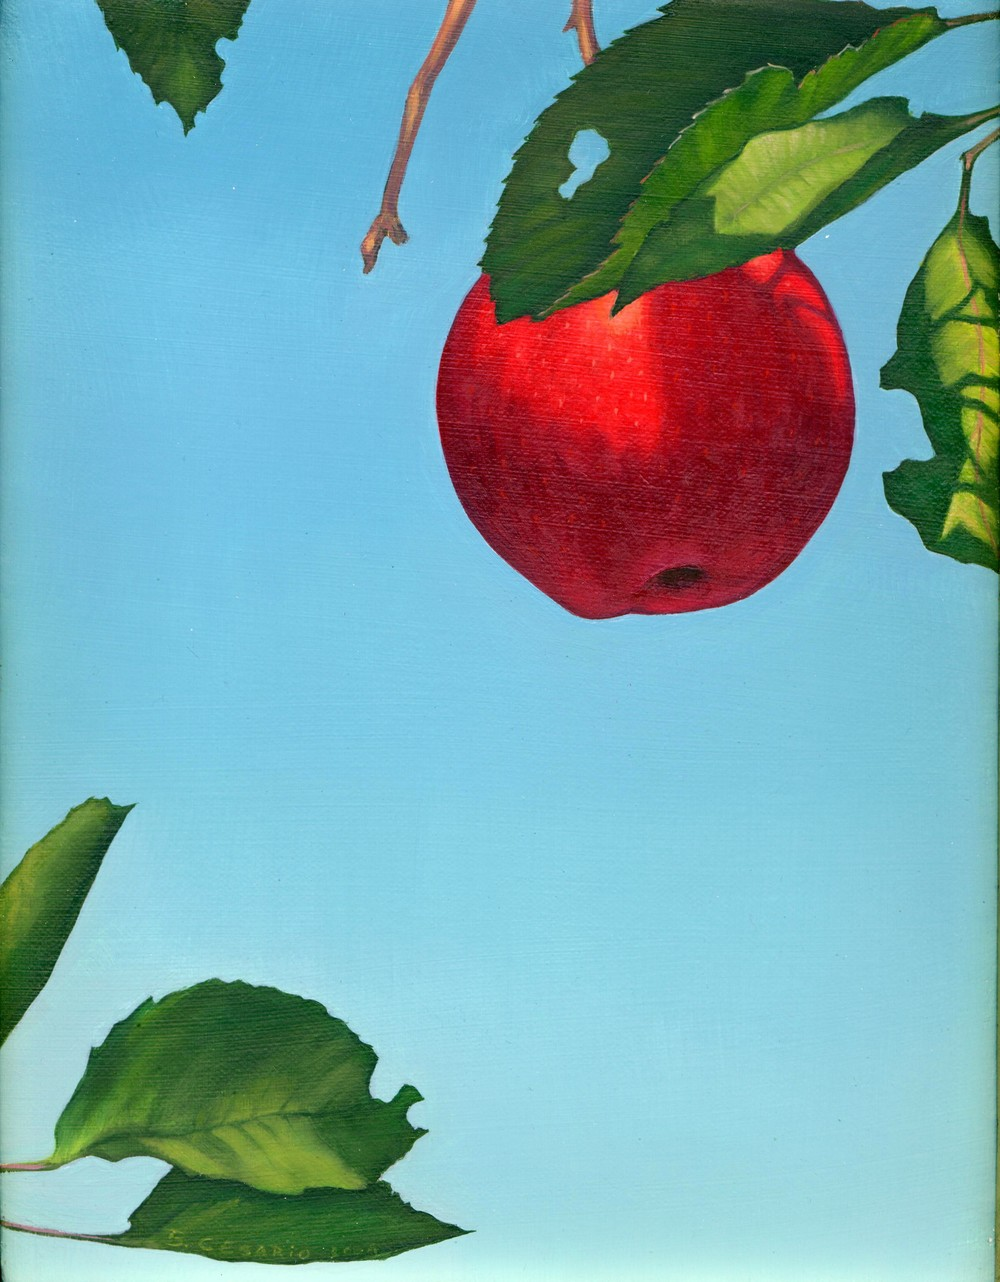 B Cesario   Apple   8x10 oil on canvas.JPG